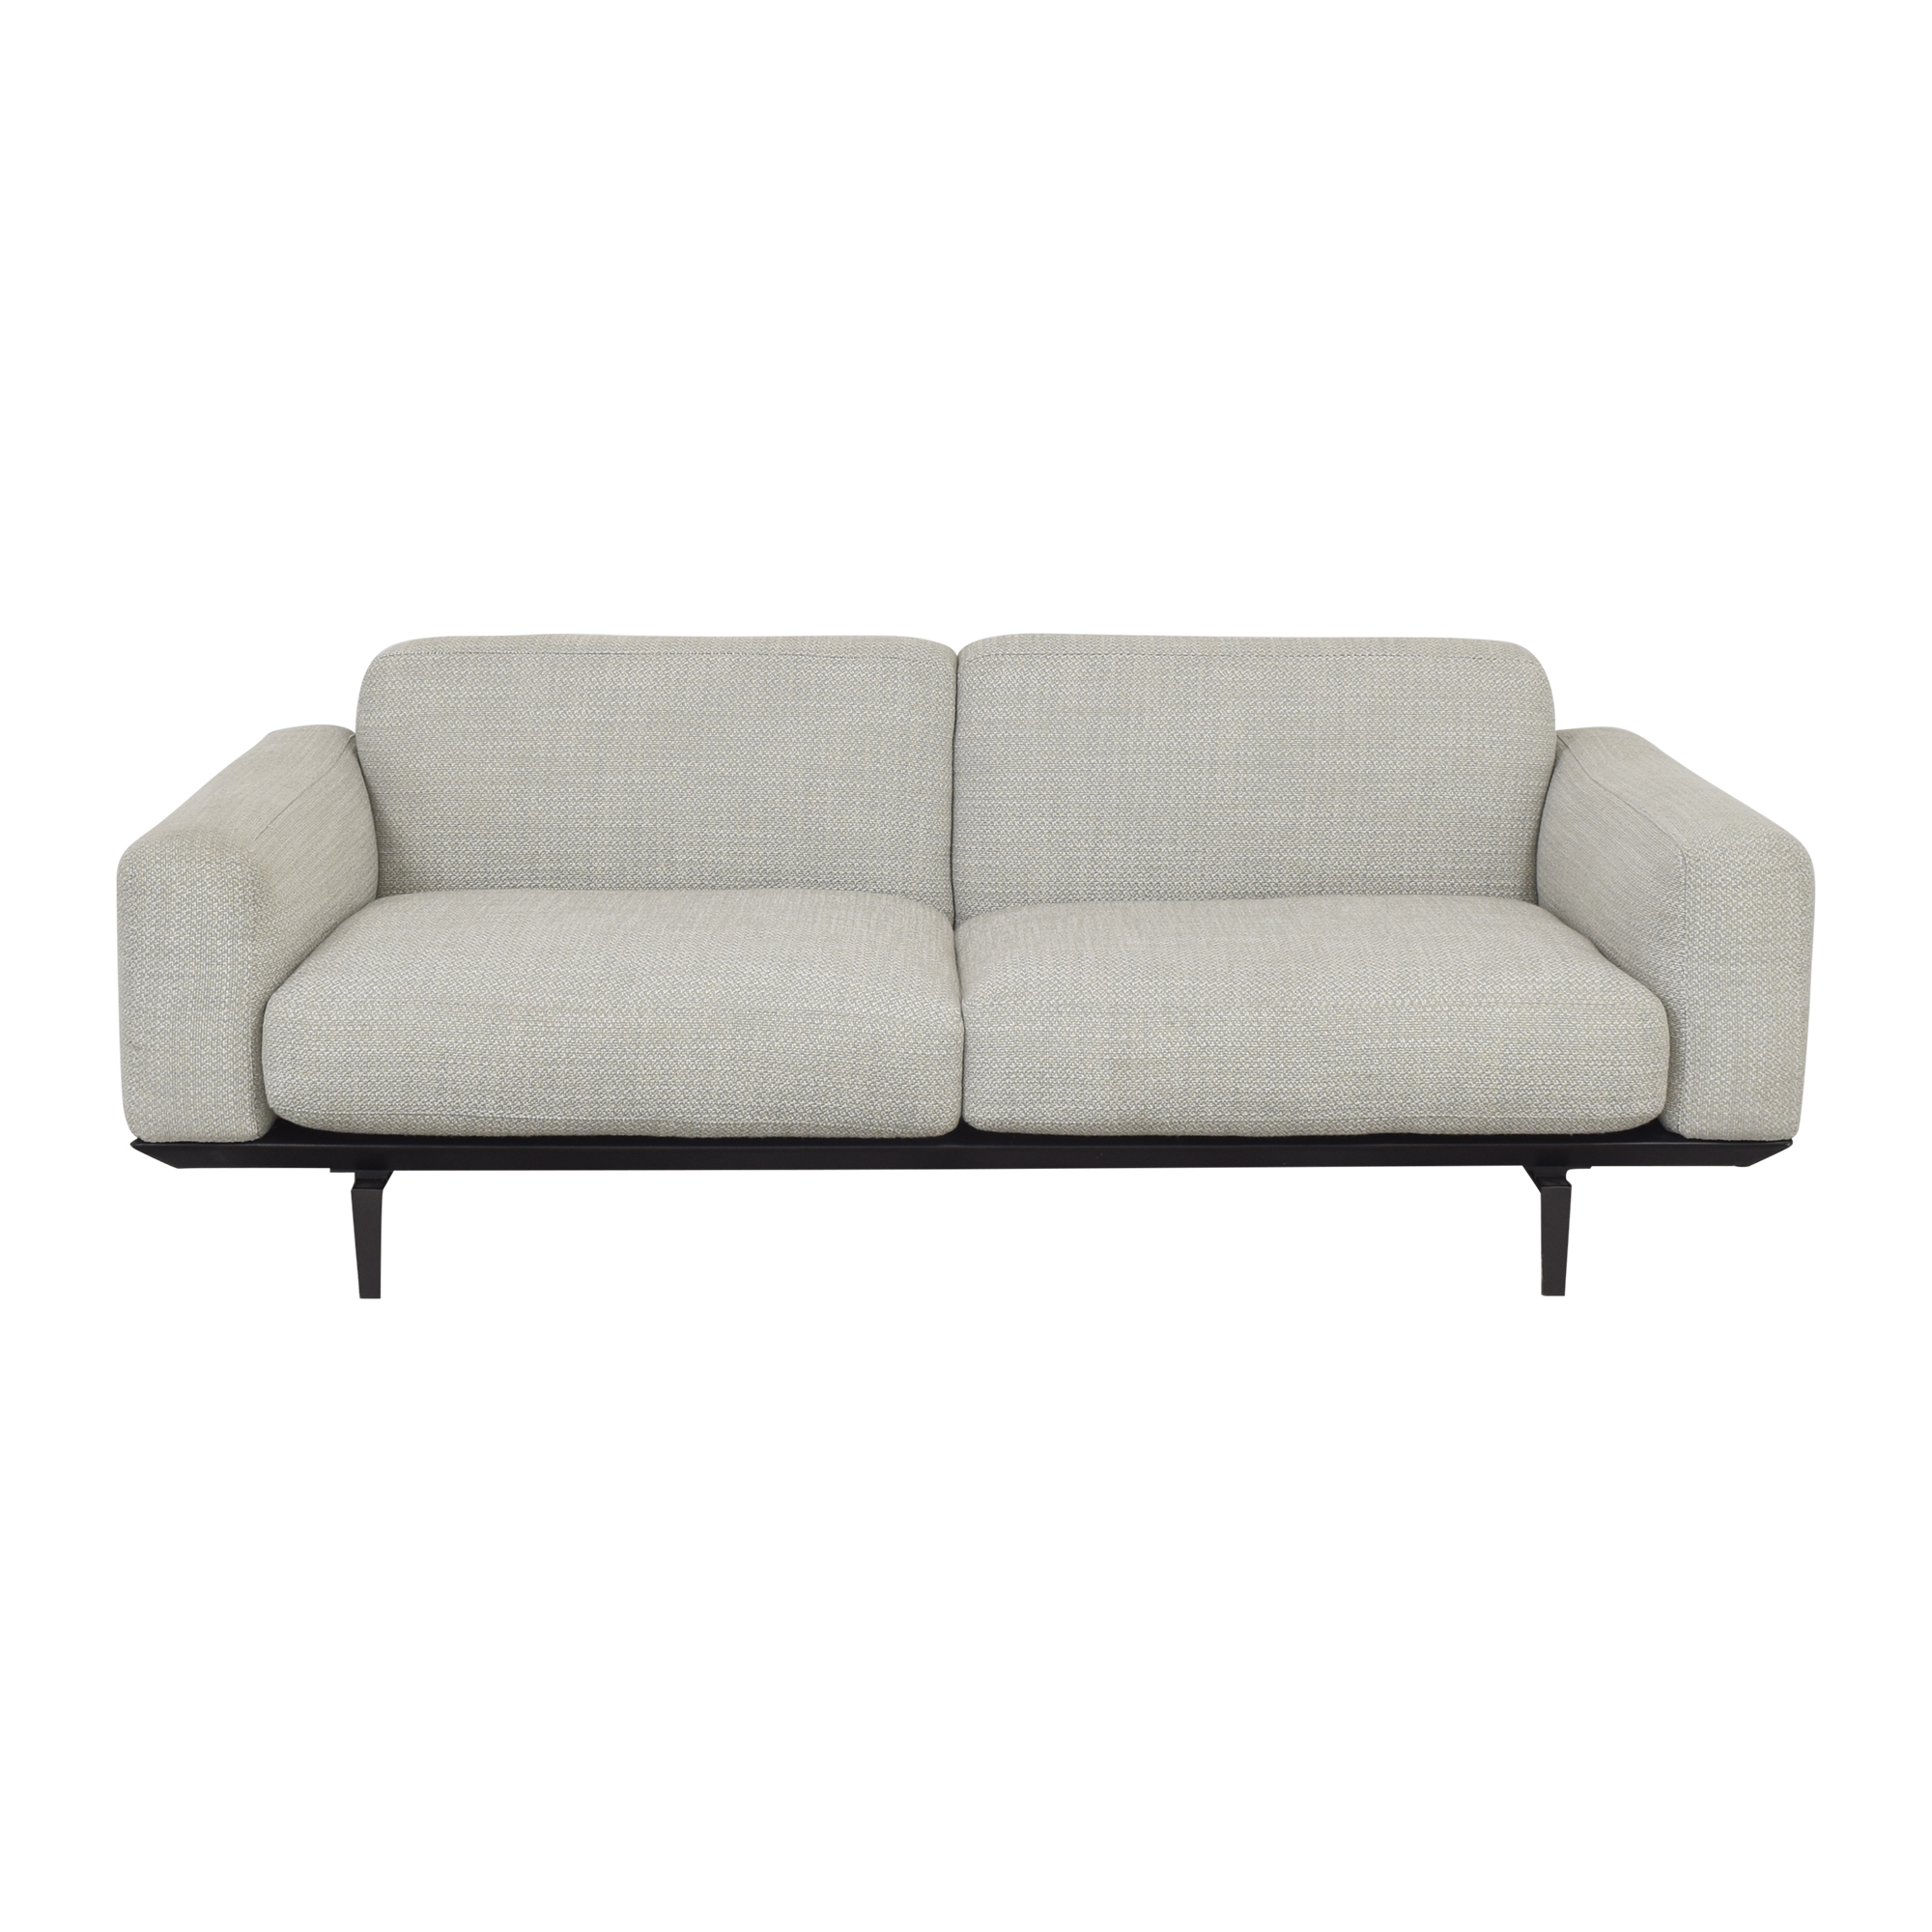 BoConcept BoConcept Two Cushion Sofa ma